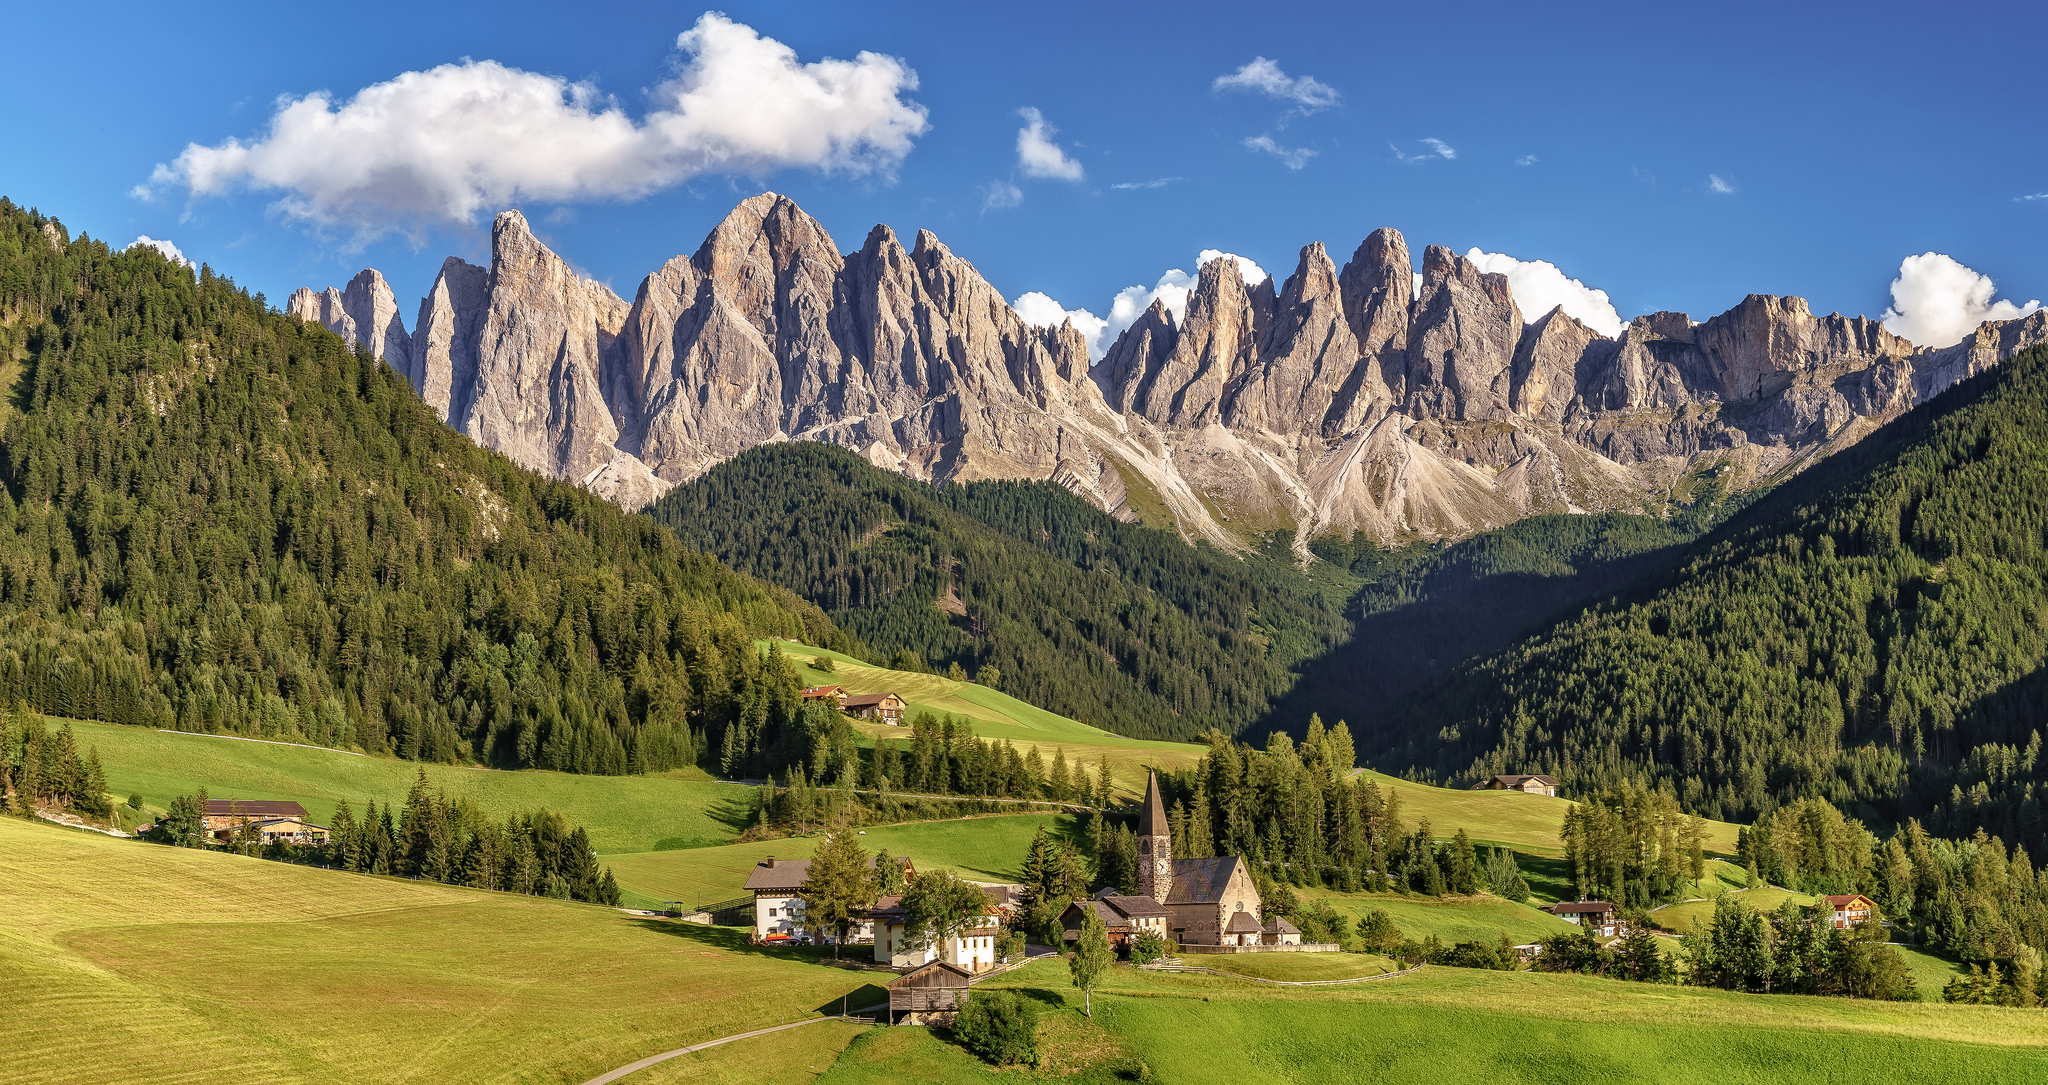 Dolomite Alps, South Tyrol, Italy